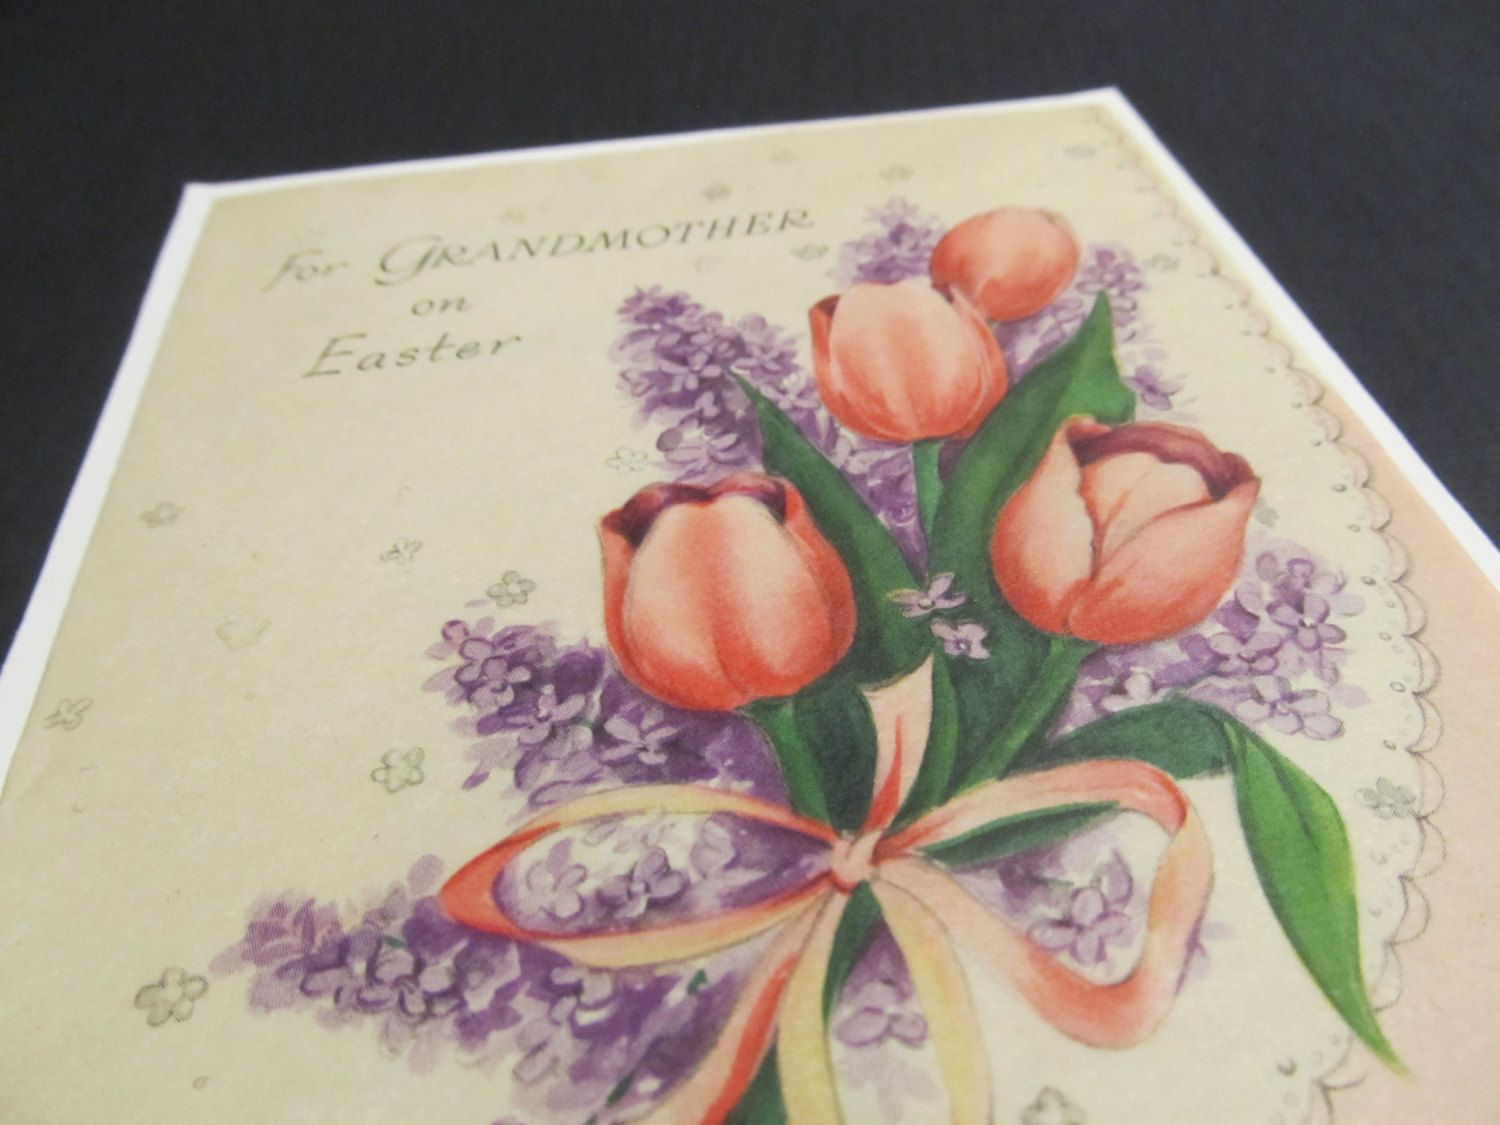 For grandmothers on easter tulip flowers lavander bouquet floral for grandmothers on easter tulip flowers lavander bouquet floral cards save hallmark greeting cardsgreeting cards freevintage m4hsunfo